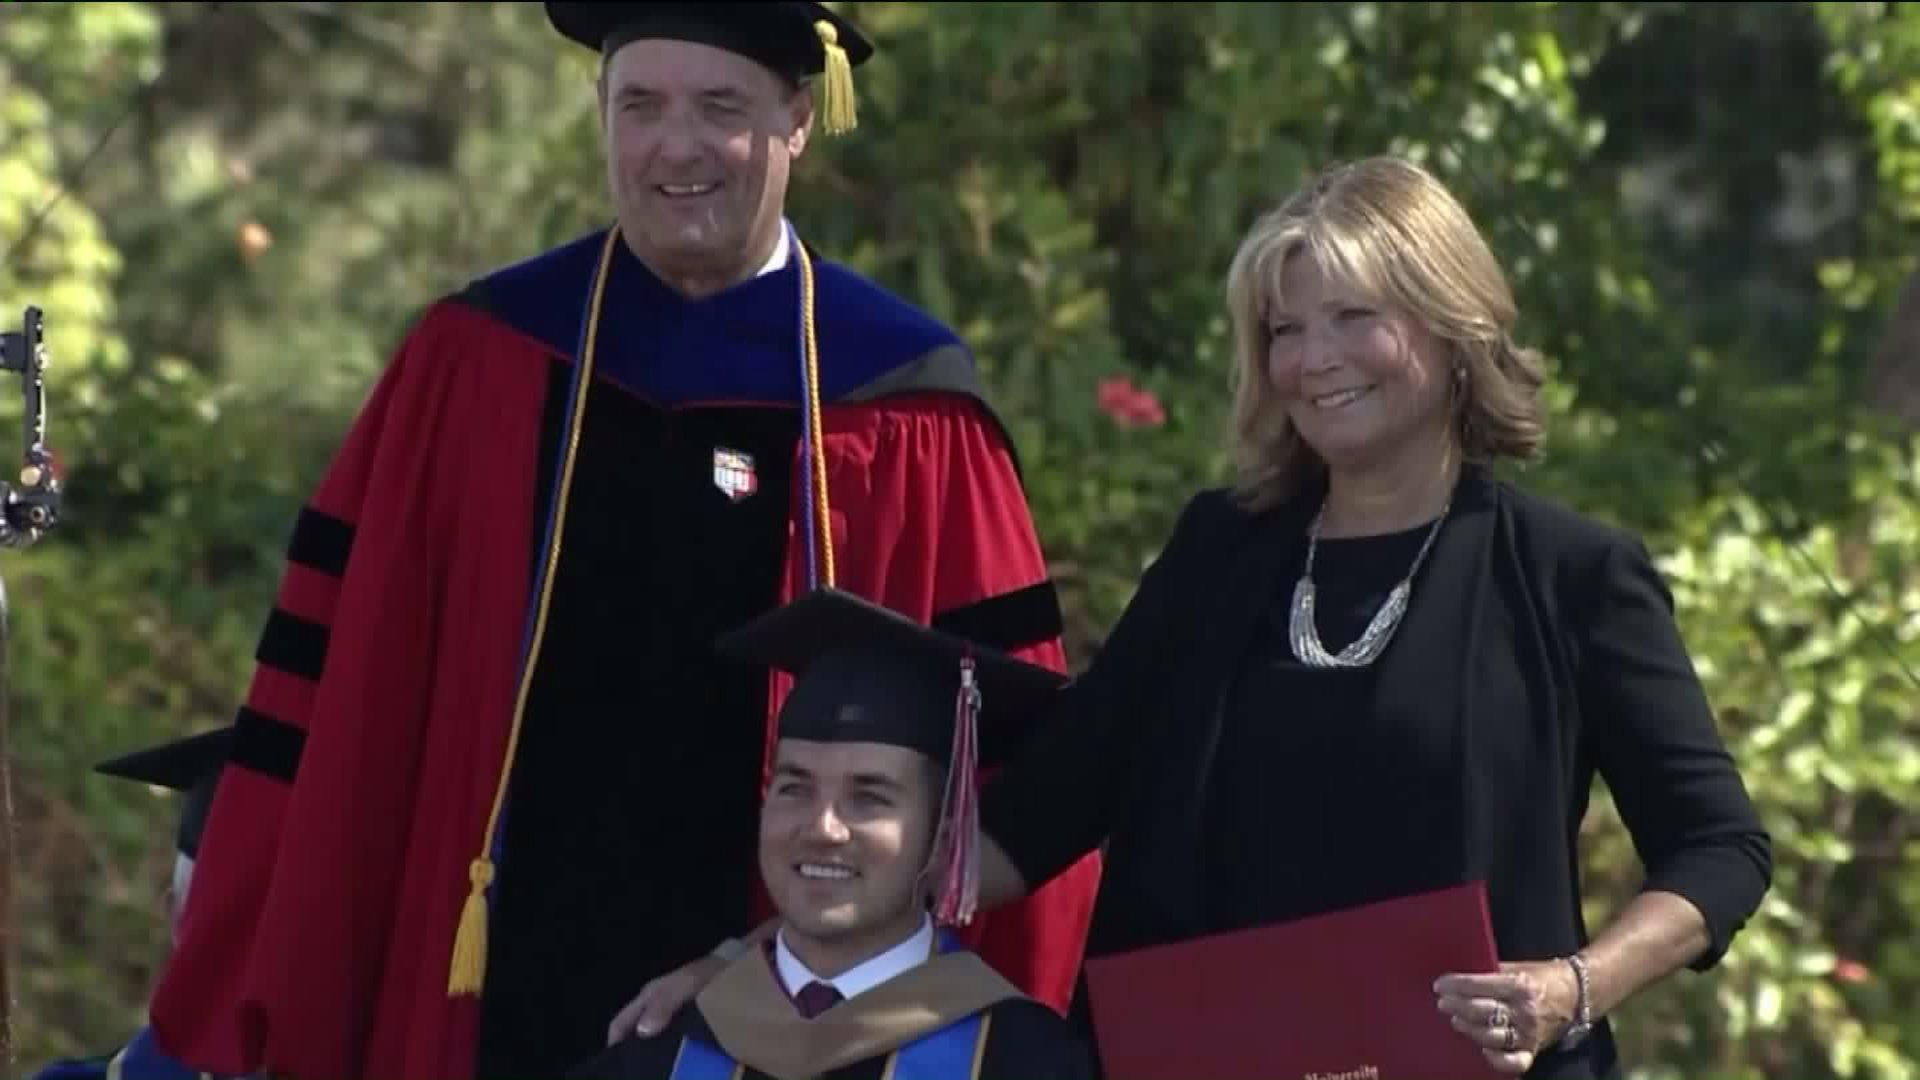 Mom Earns Honorary MBA After Attending Every Class with Quadriplegic Son